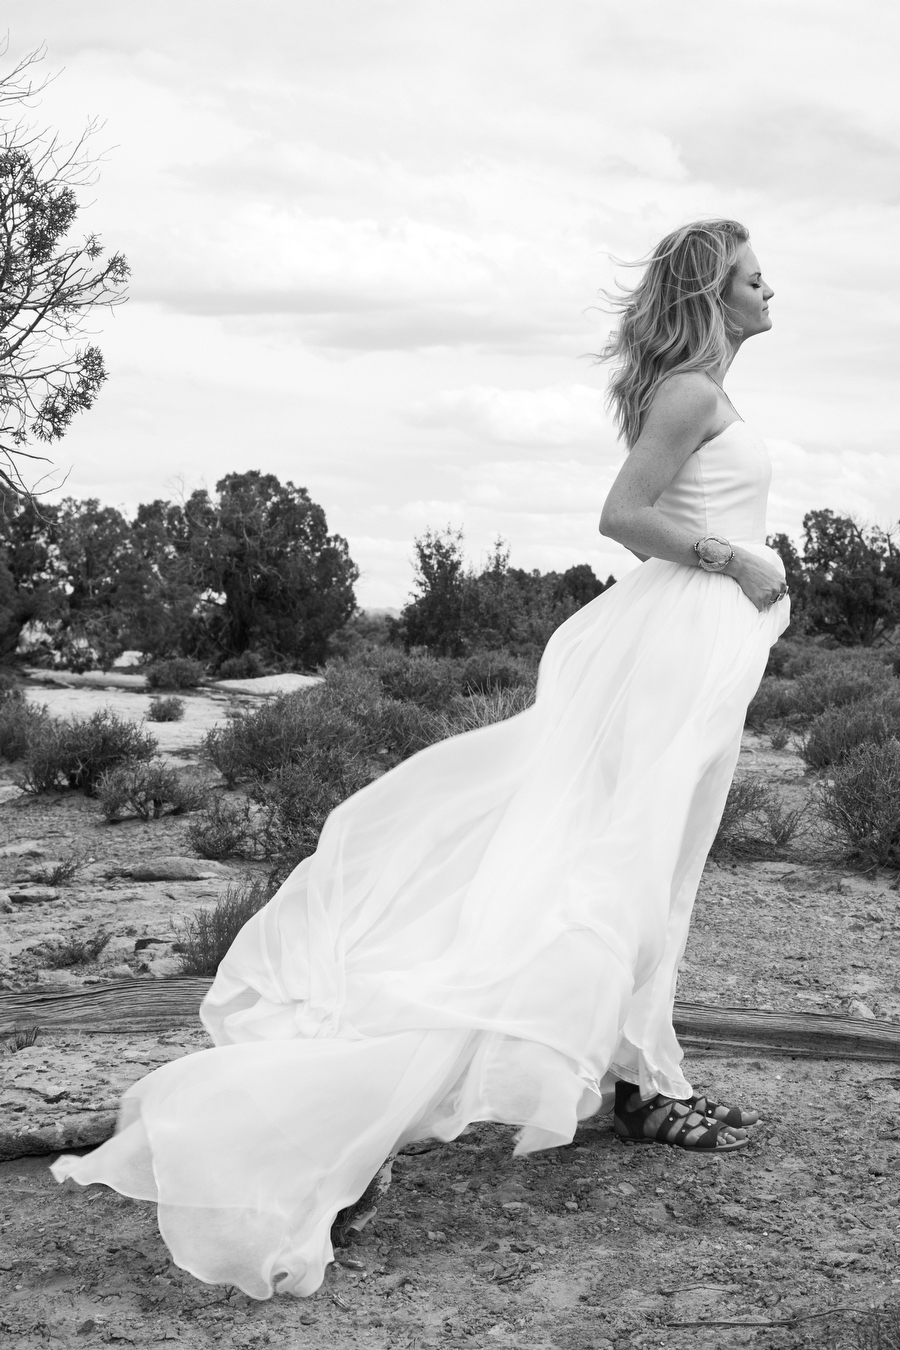 MARIACORONAPHOTOGRAPHY_MOAB_WEDDING_047.JPG